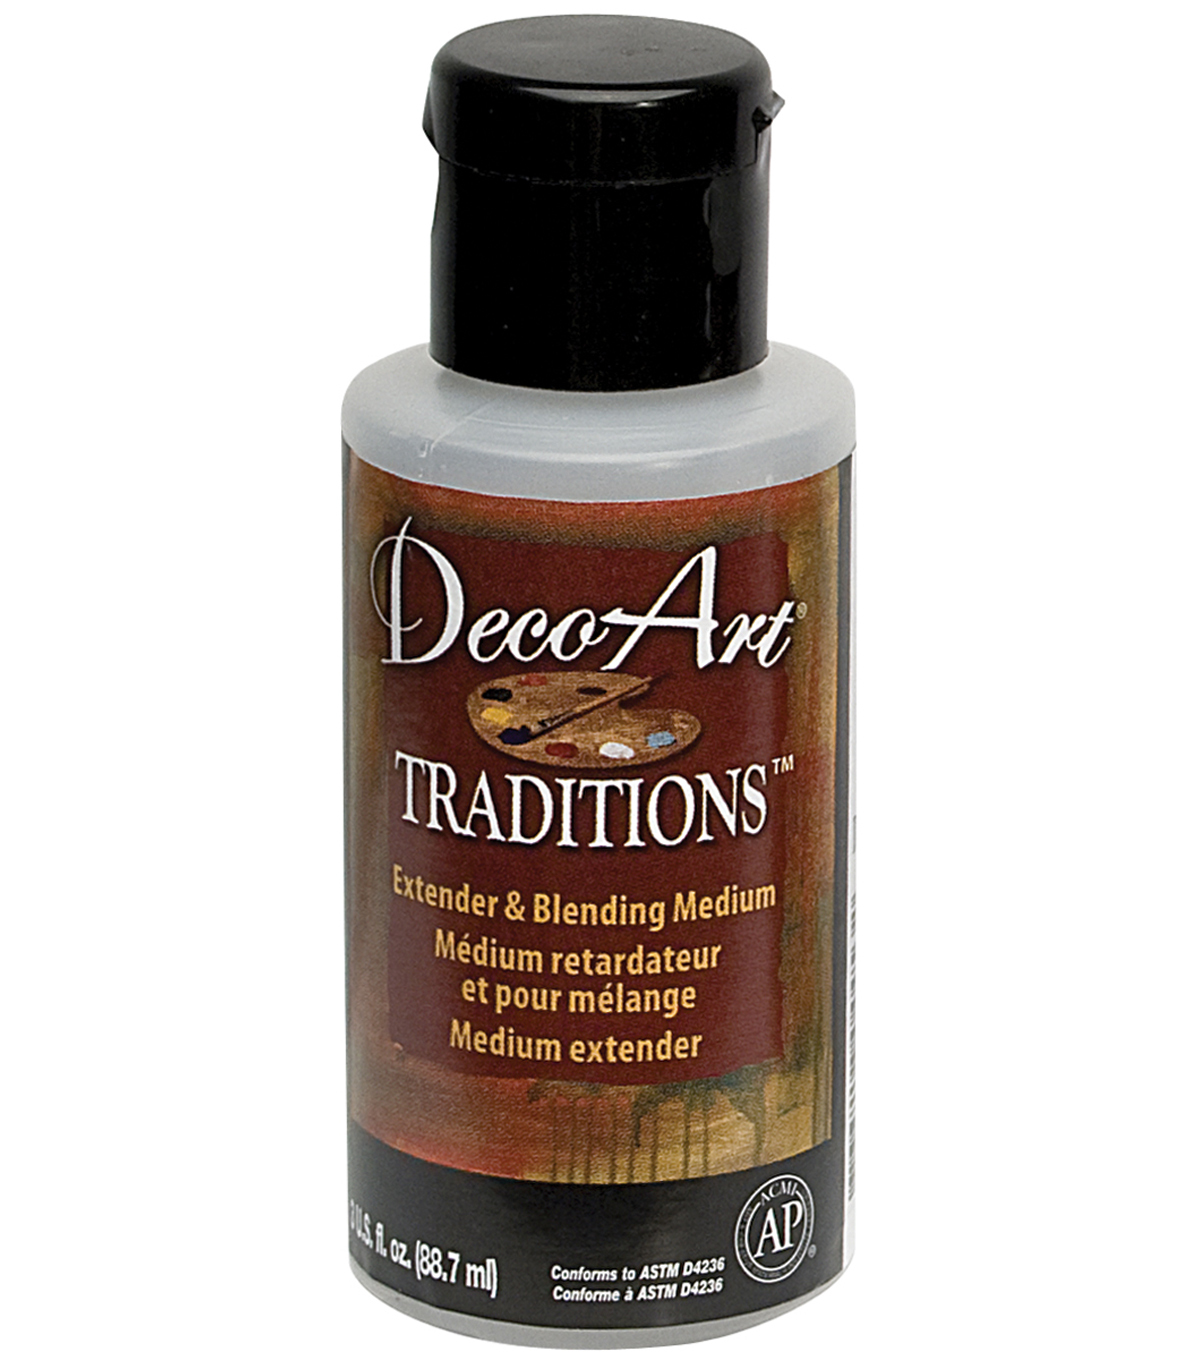 Deco Art Traditions Extender & Blending Medium 3 Ounces